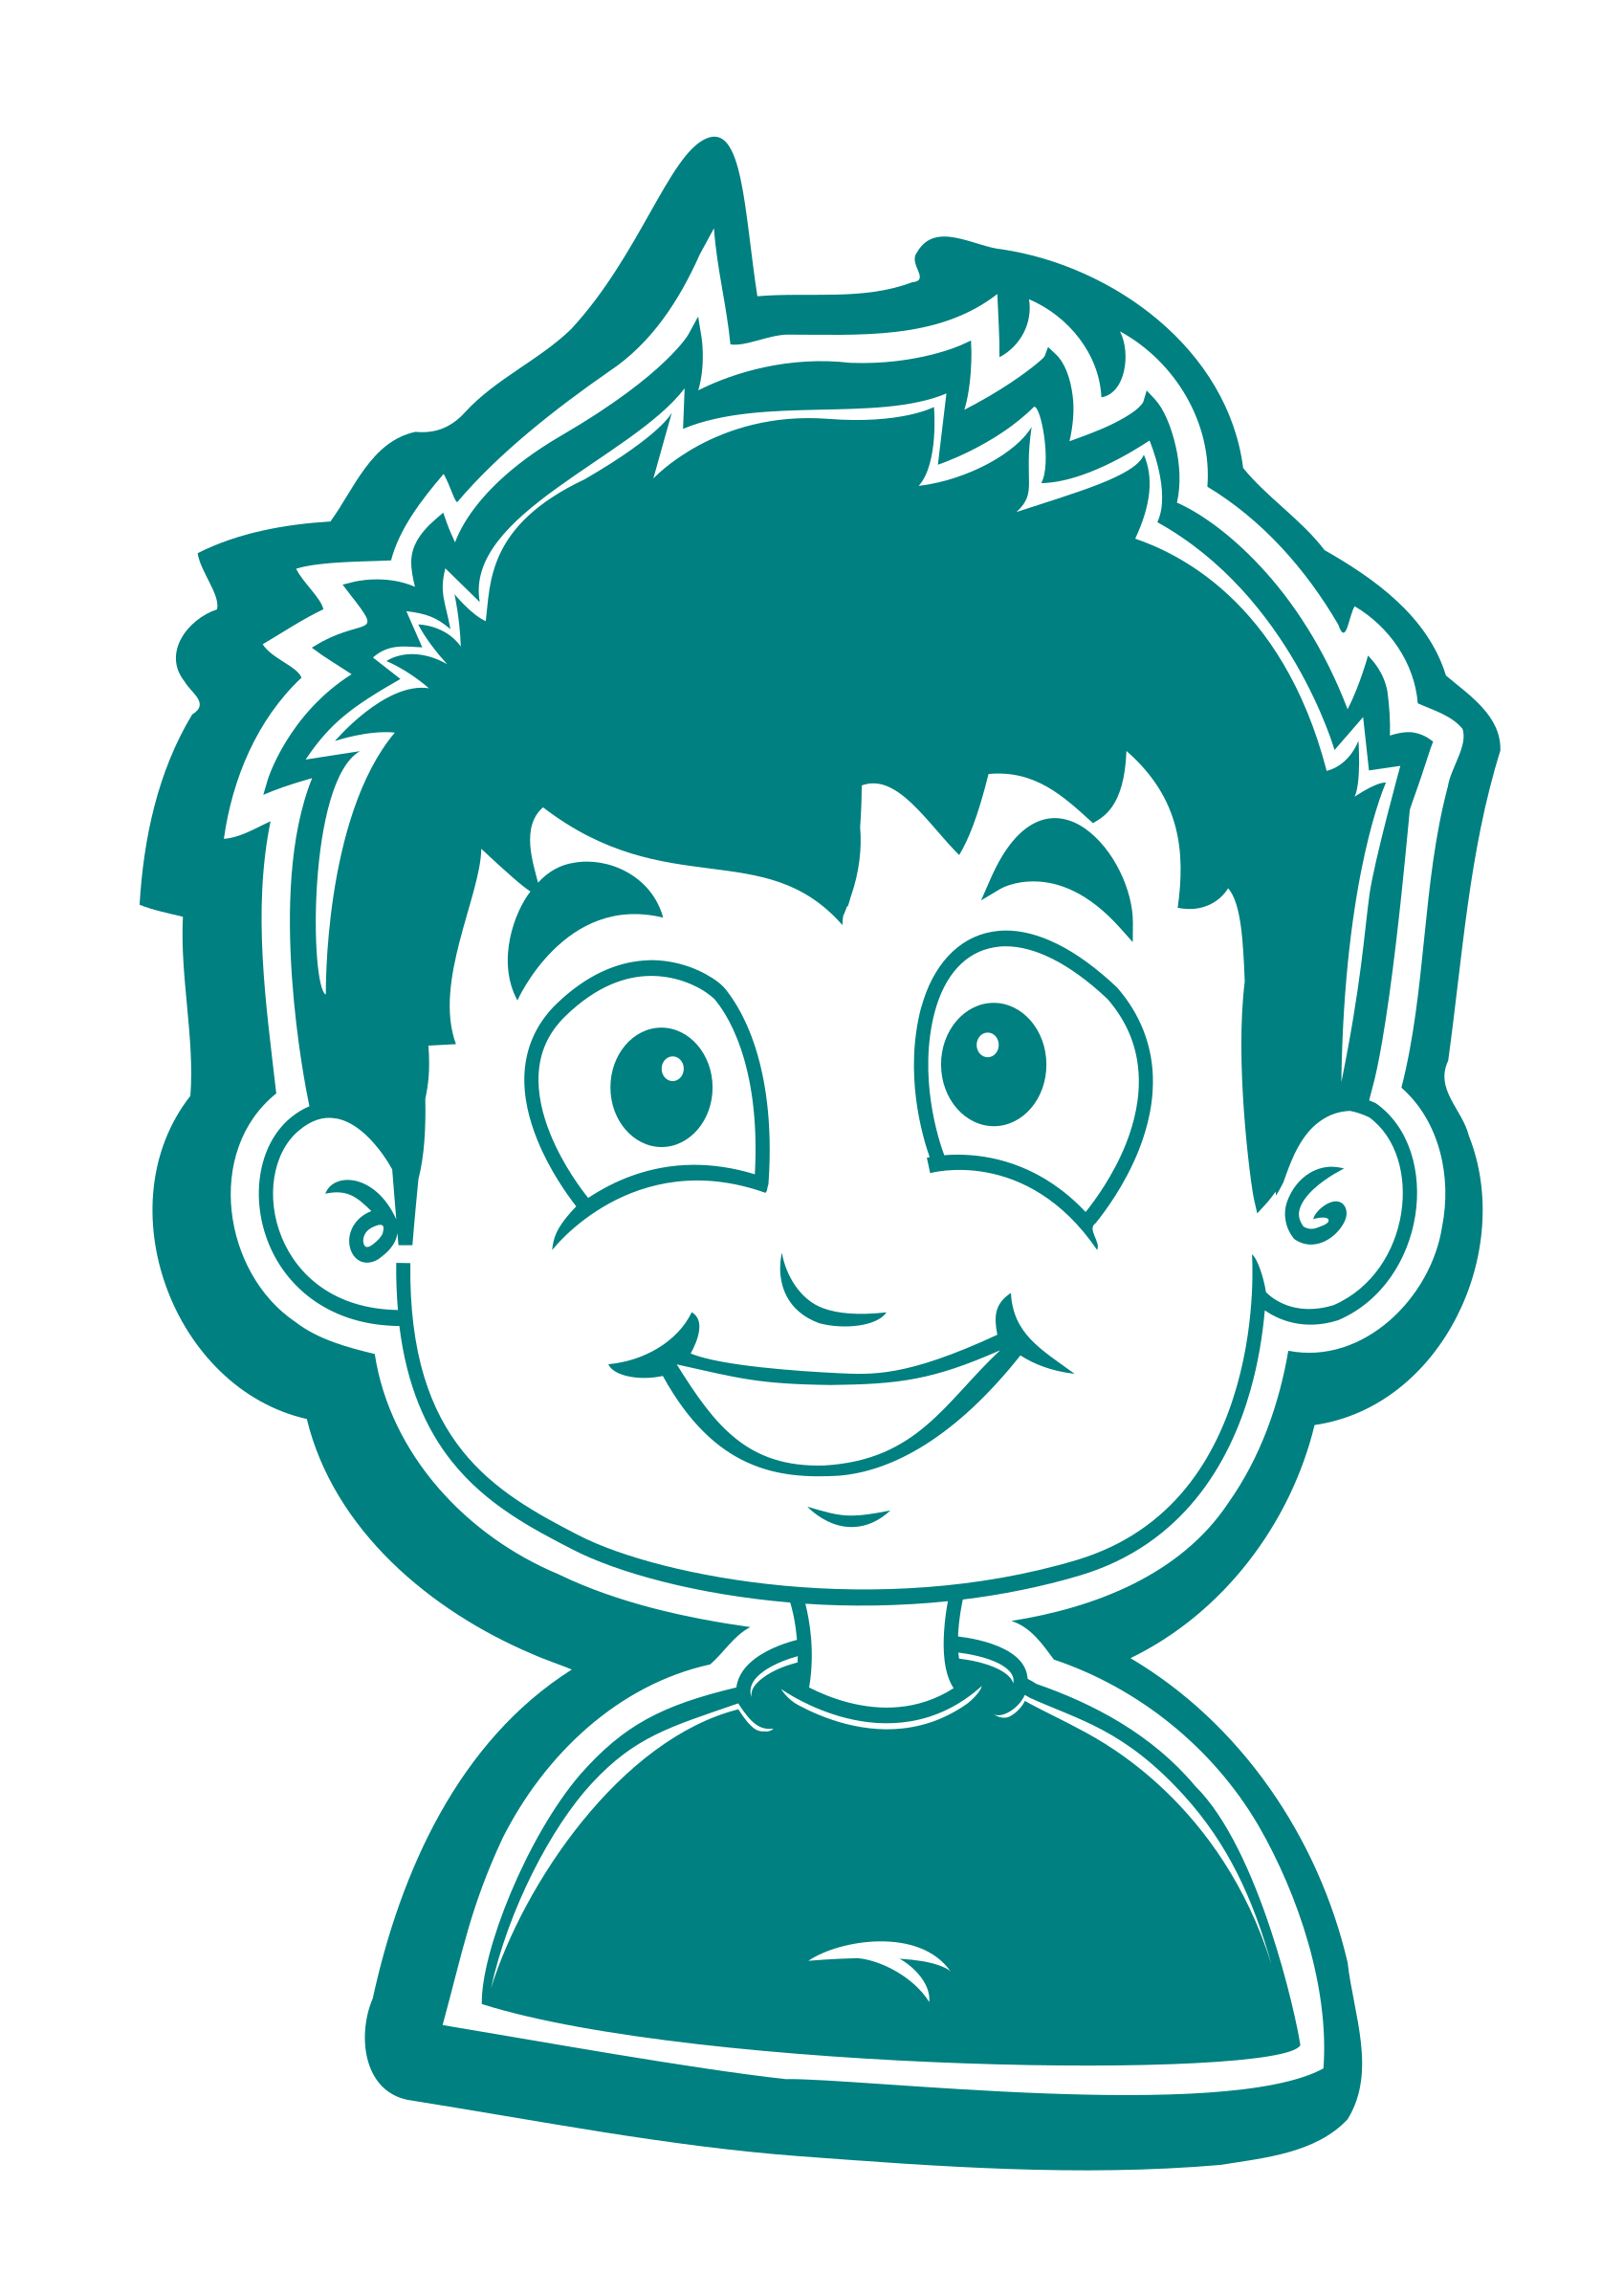 Clipart shirt child. Smiling boy white for